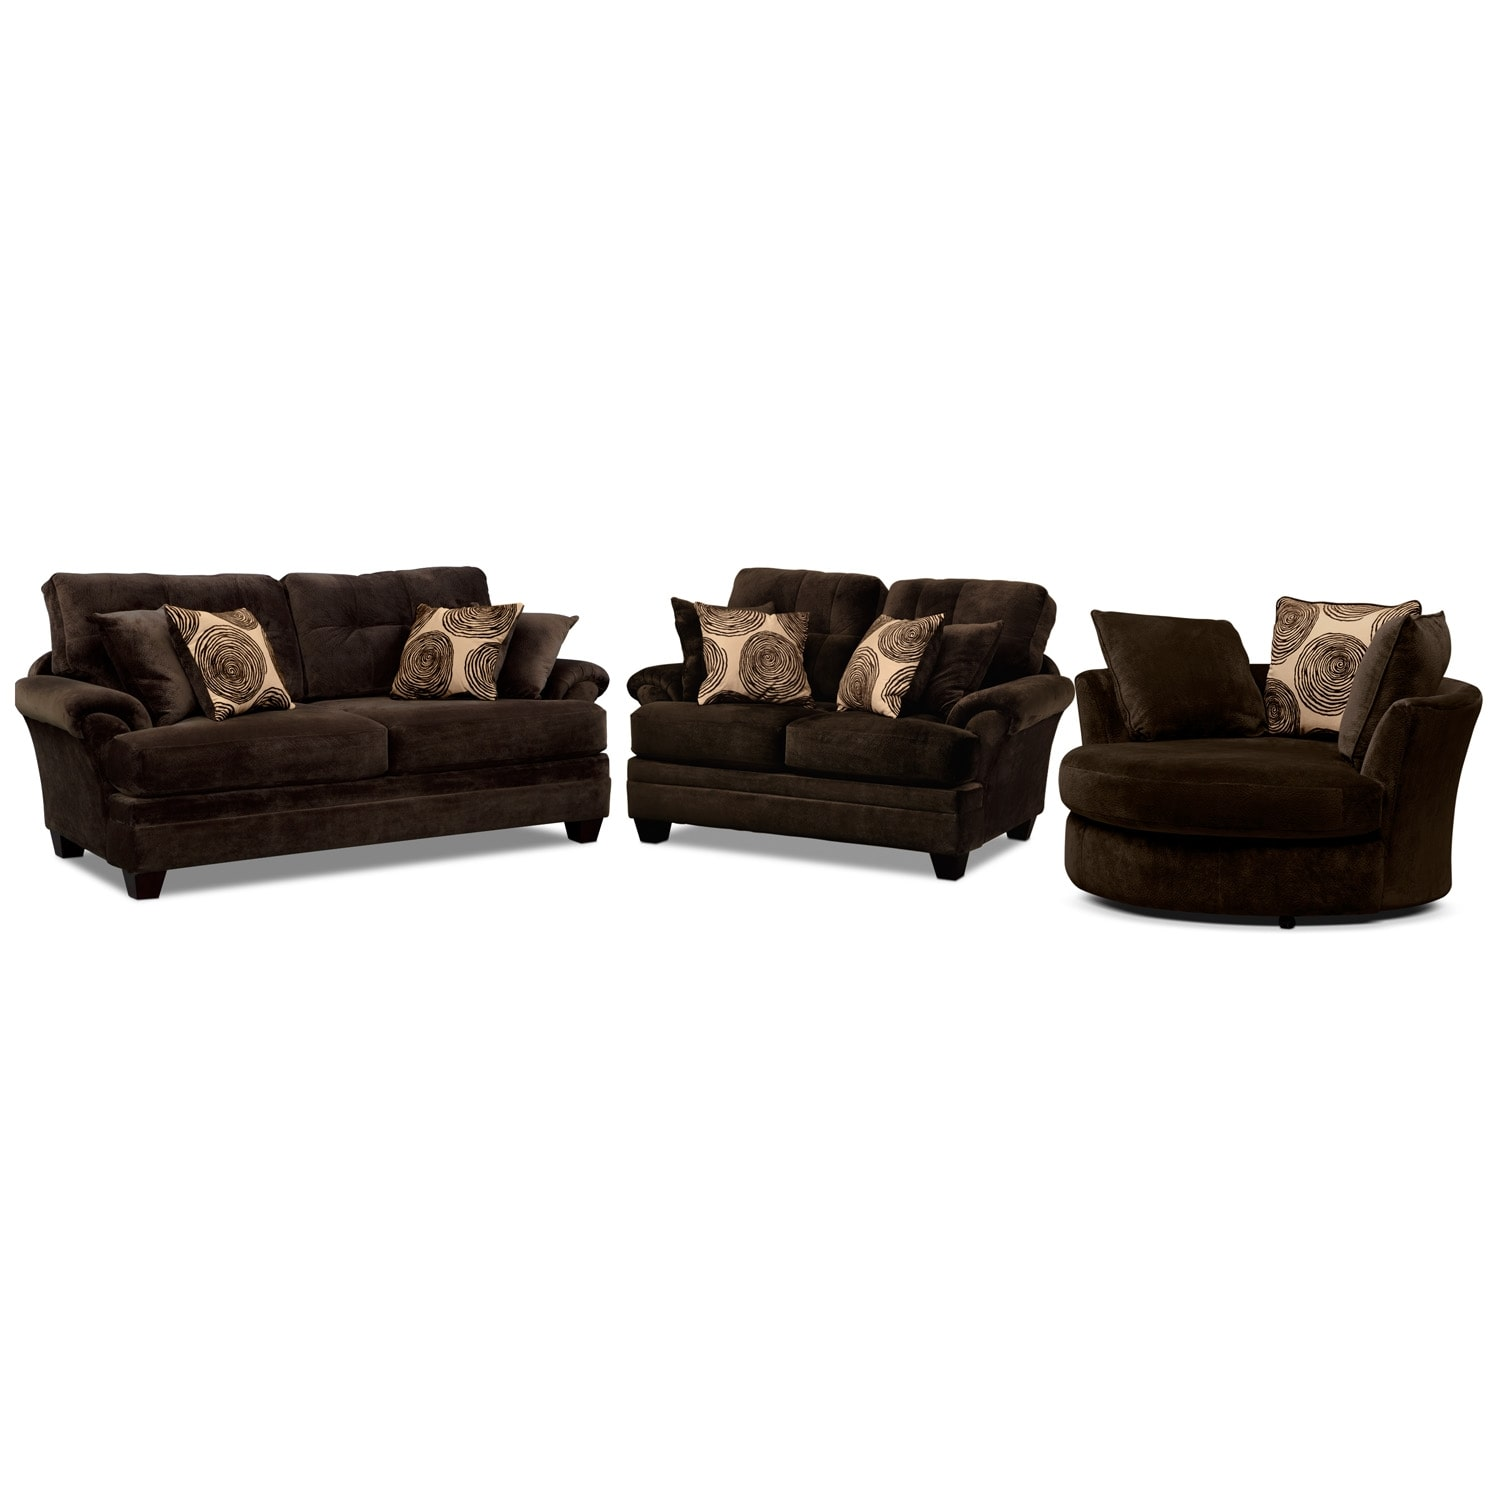 [Cordoba Chocolate 3 Pc. Living Room w/ Swivel Chair]